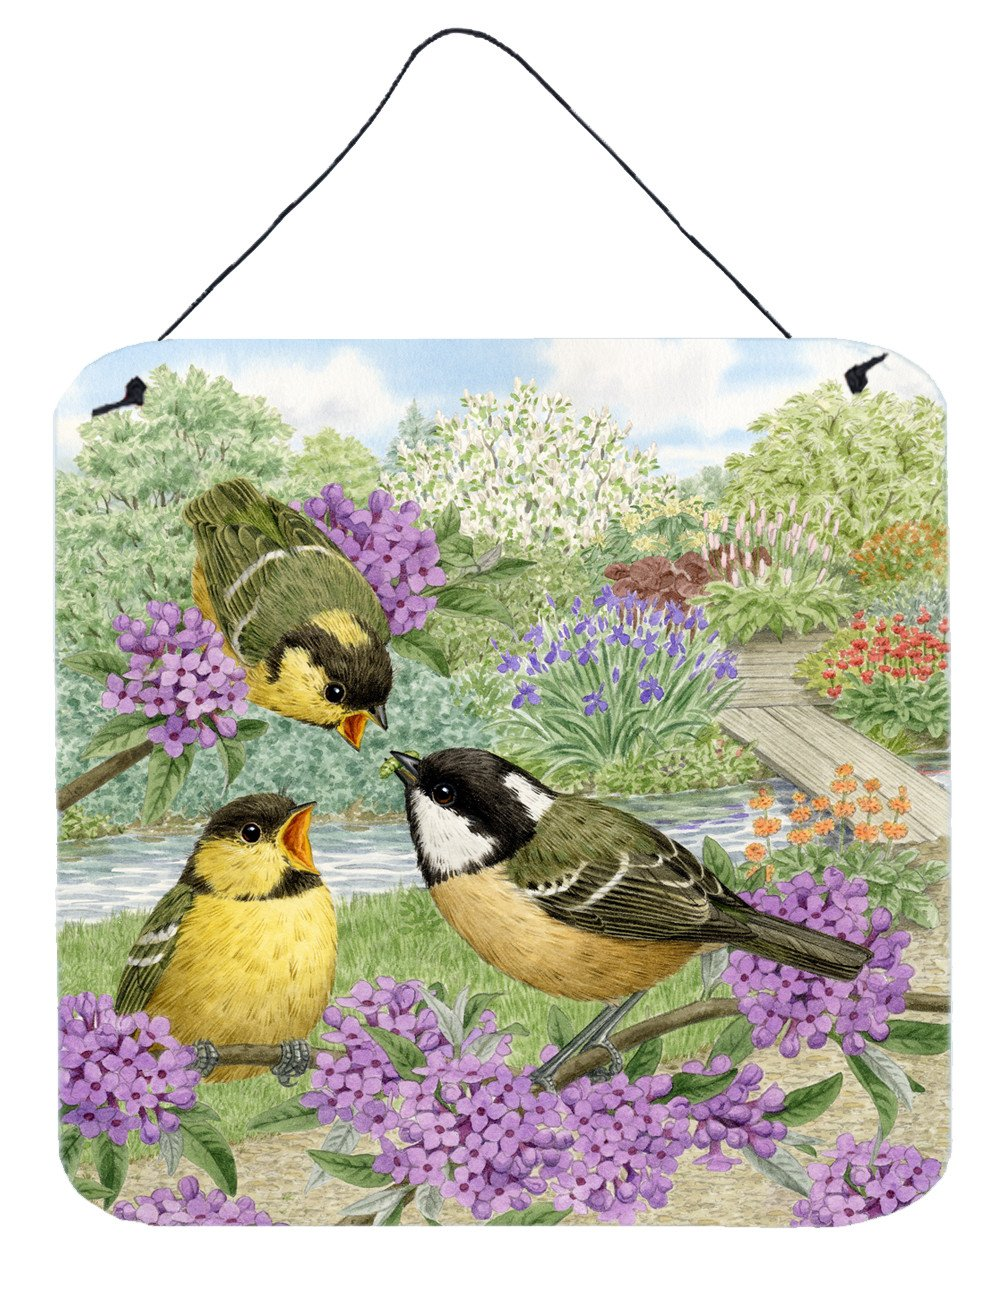 Coal Tits Feeding Time Wall or Door Hanging Prints ASAD0686DS66 by Caroline's Treasures